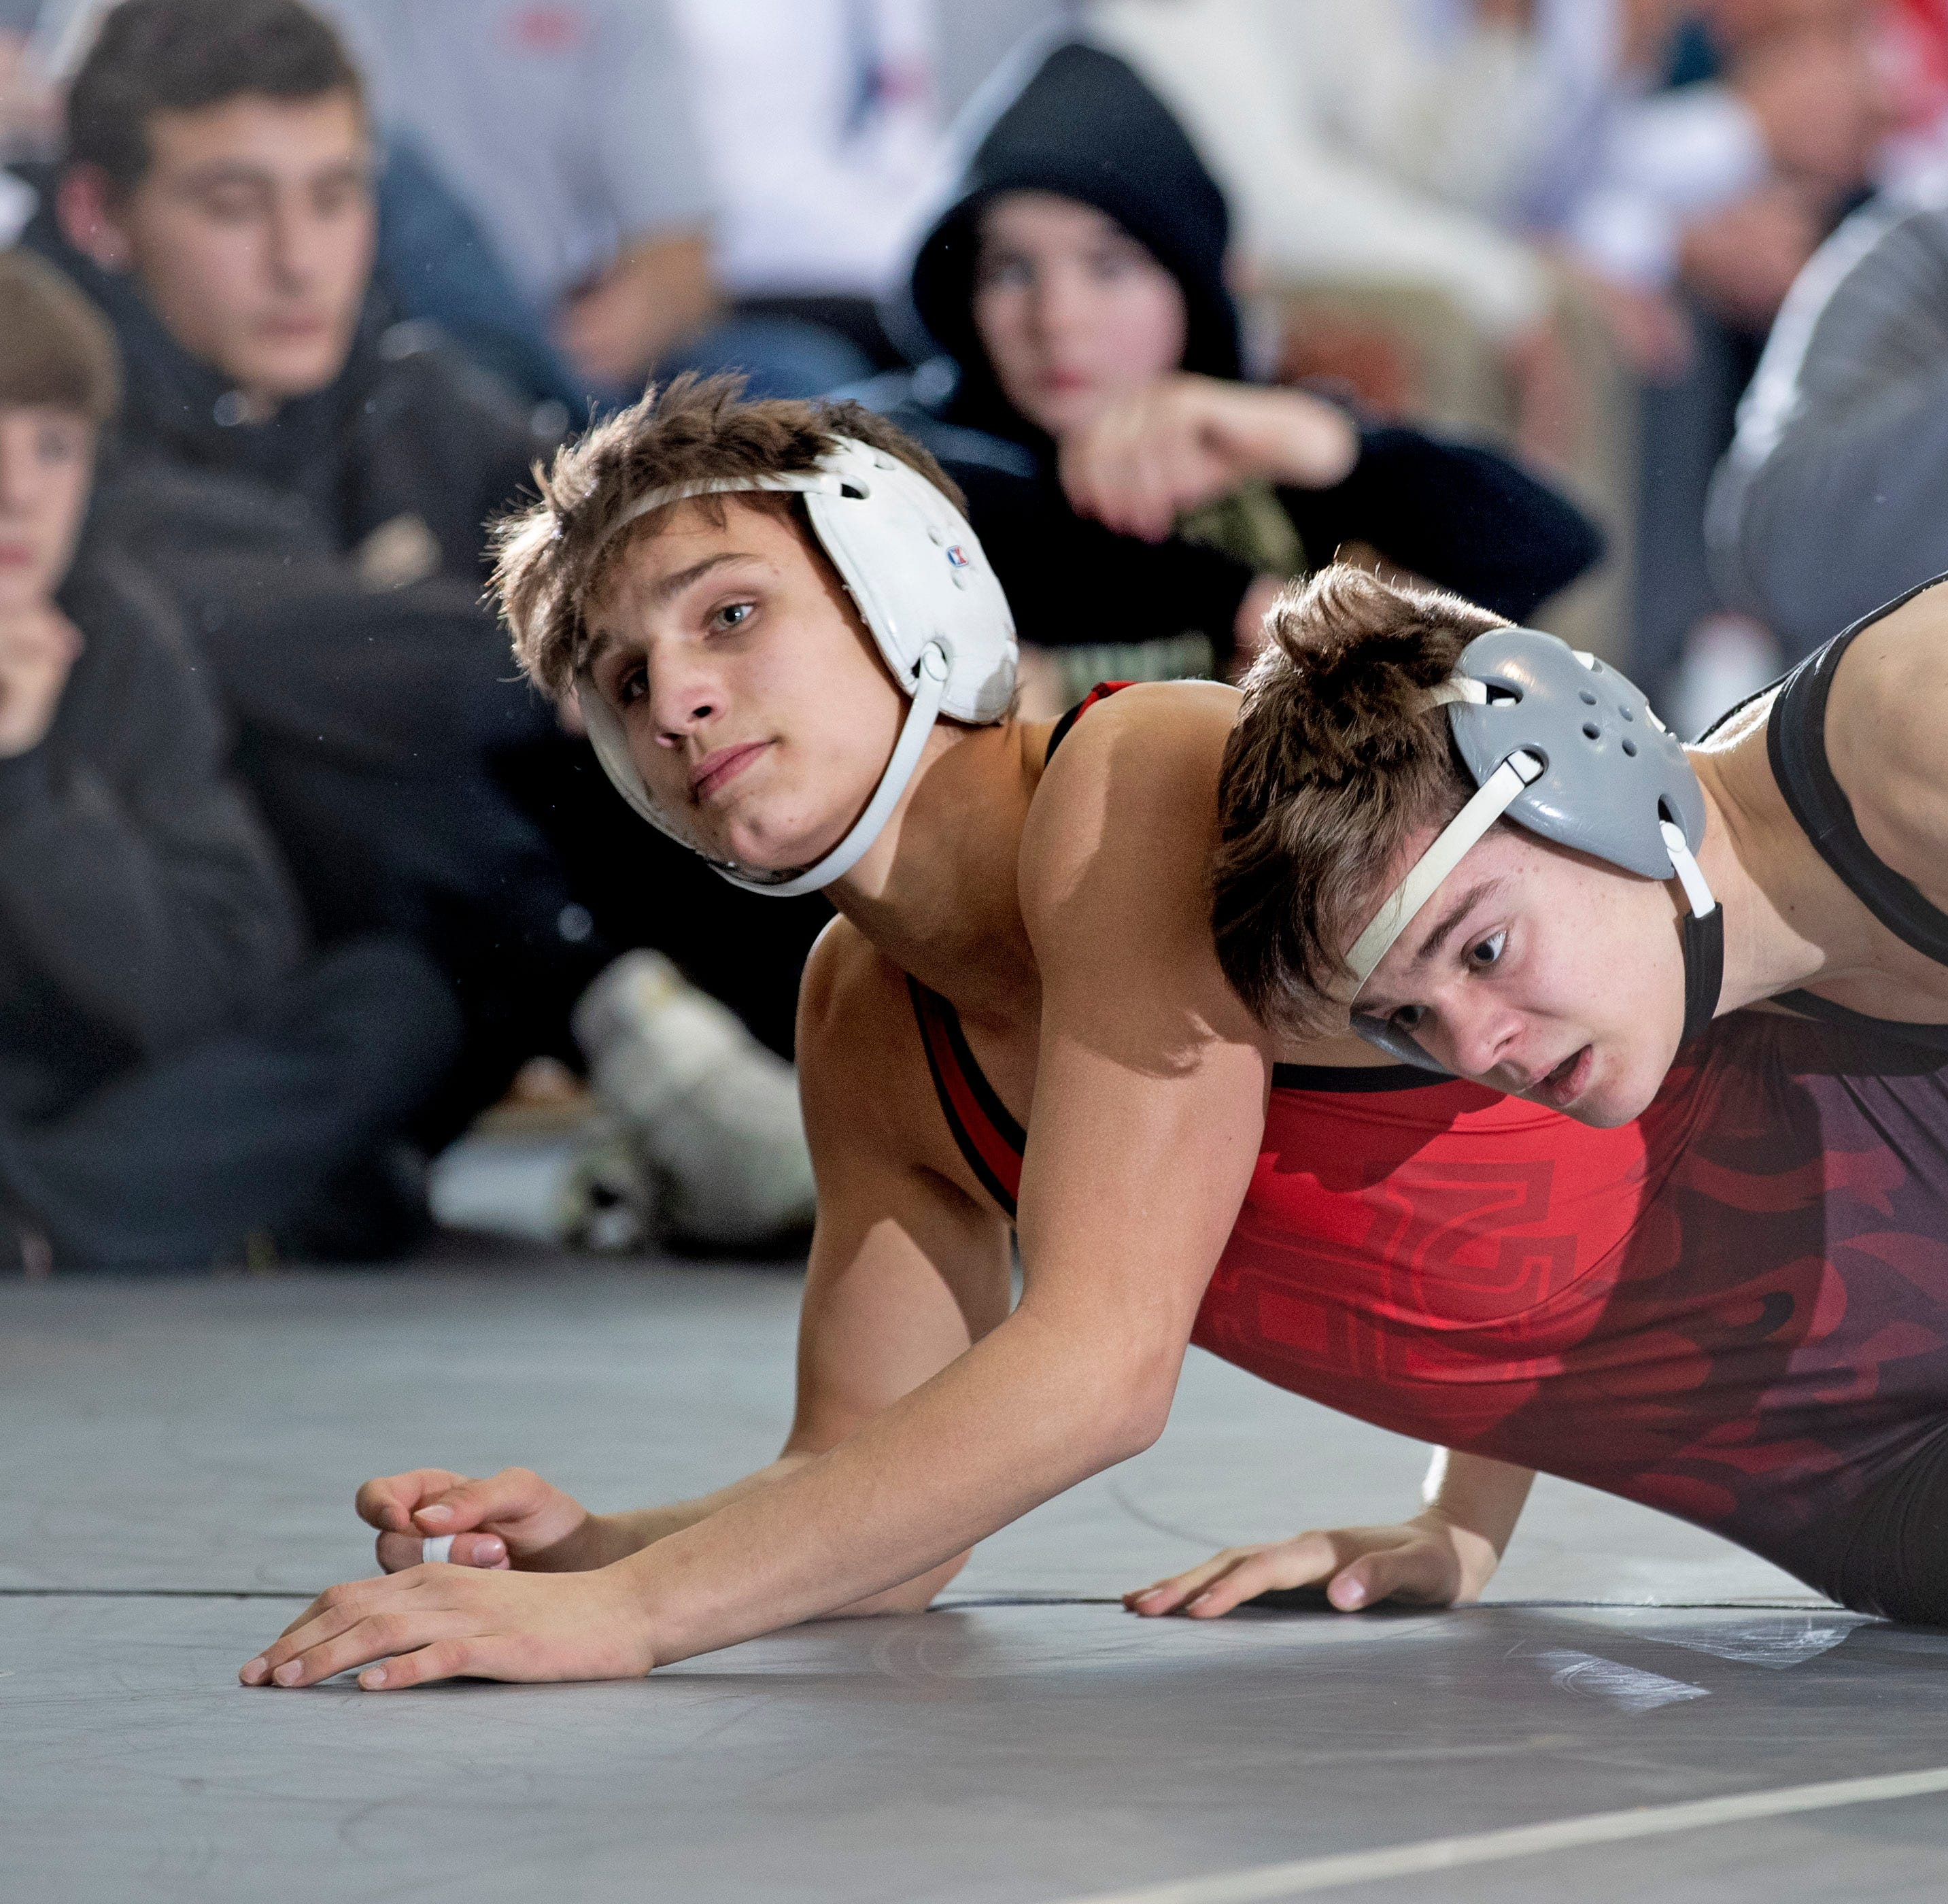 NJ Wrestling: 'Gutsy' Hunterdon Central's postseason run ends with 34-27 loss to Southern in Group V final